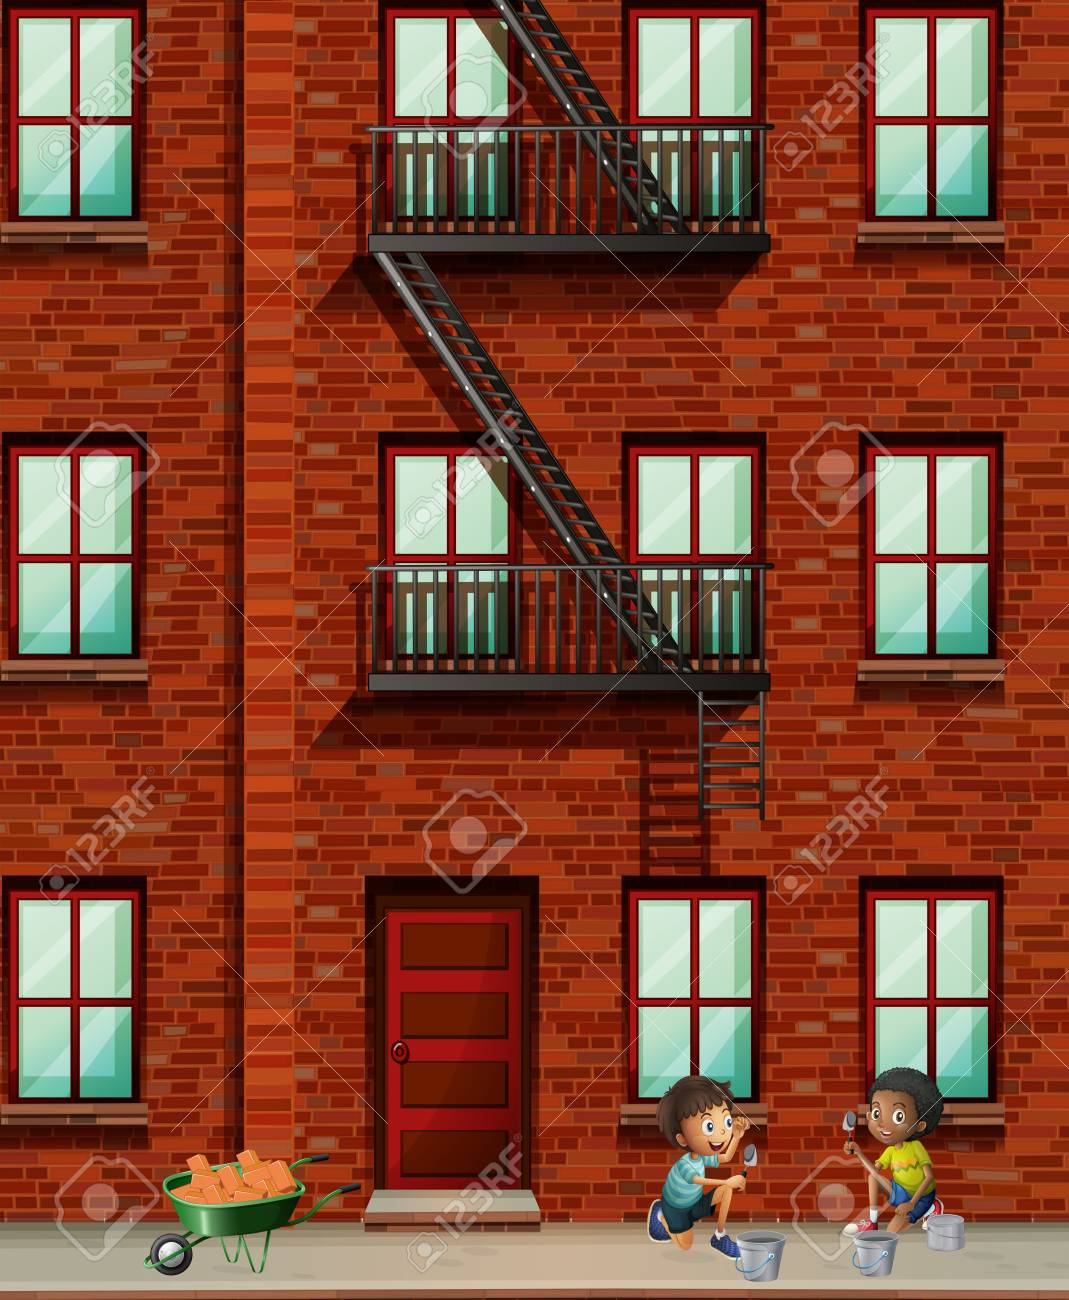 Merveilleux Apartment Building Scene With Boys Laying Bricks Illustration Stock Vector    68313018